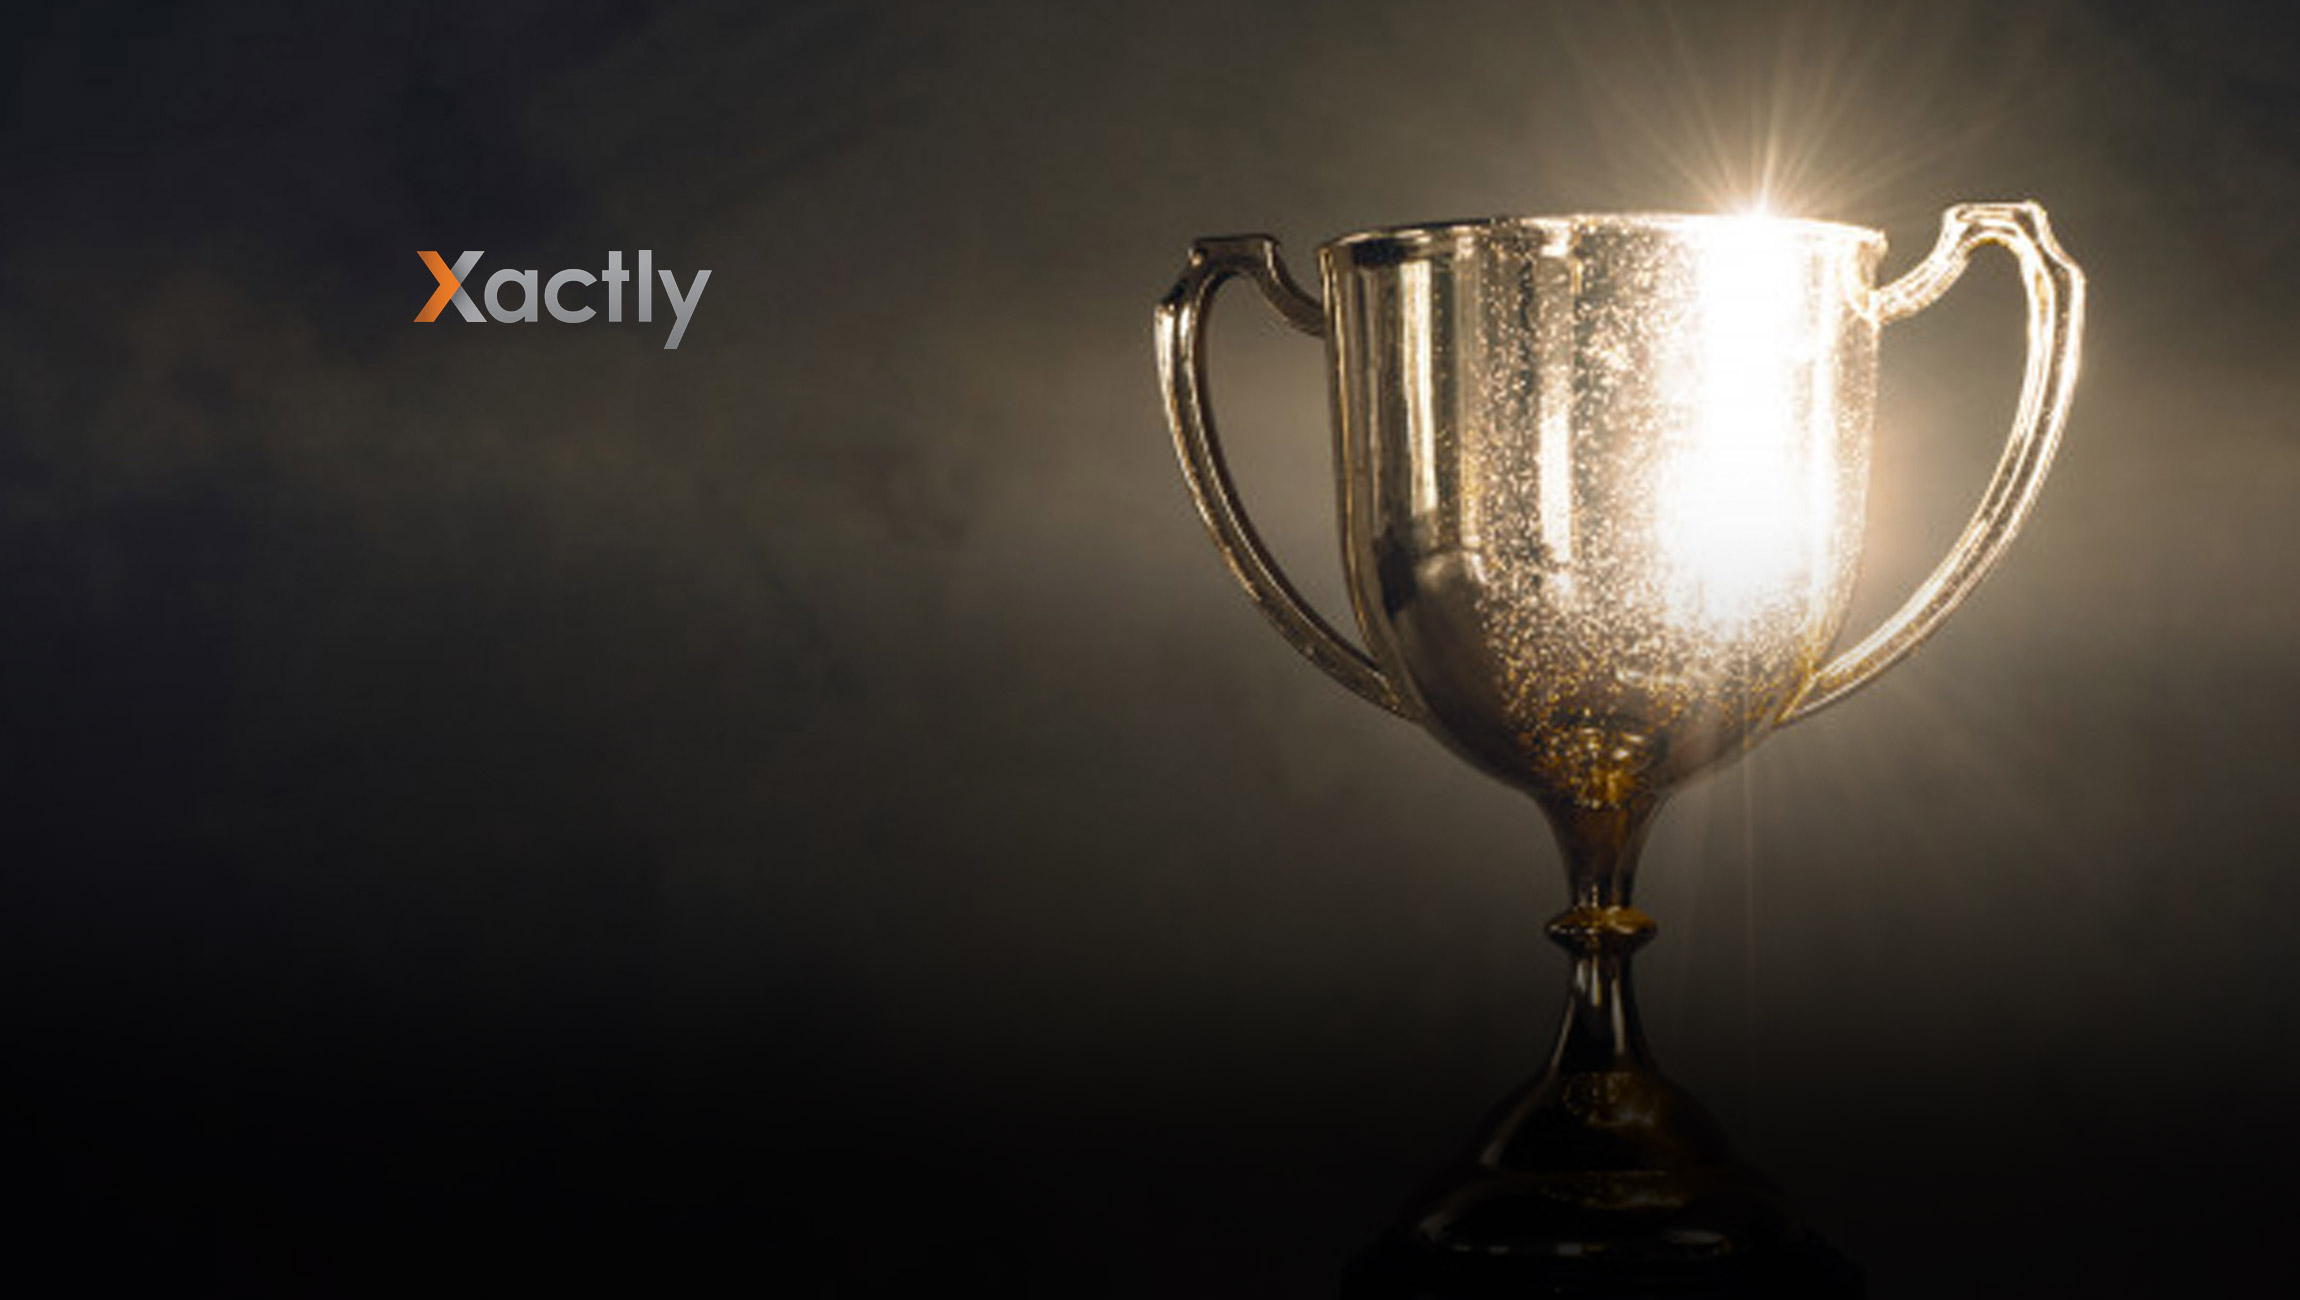 Xactly Forecasting Wins 2021 Artificial Intelligence Breakthrough Award